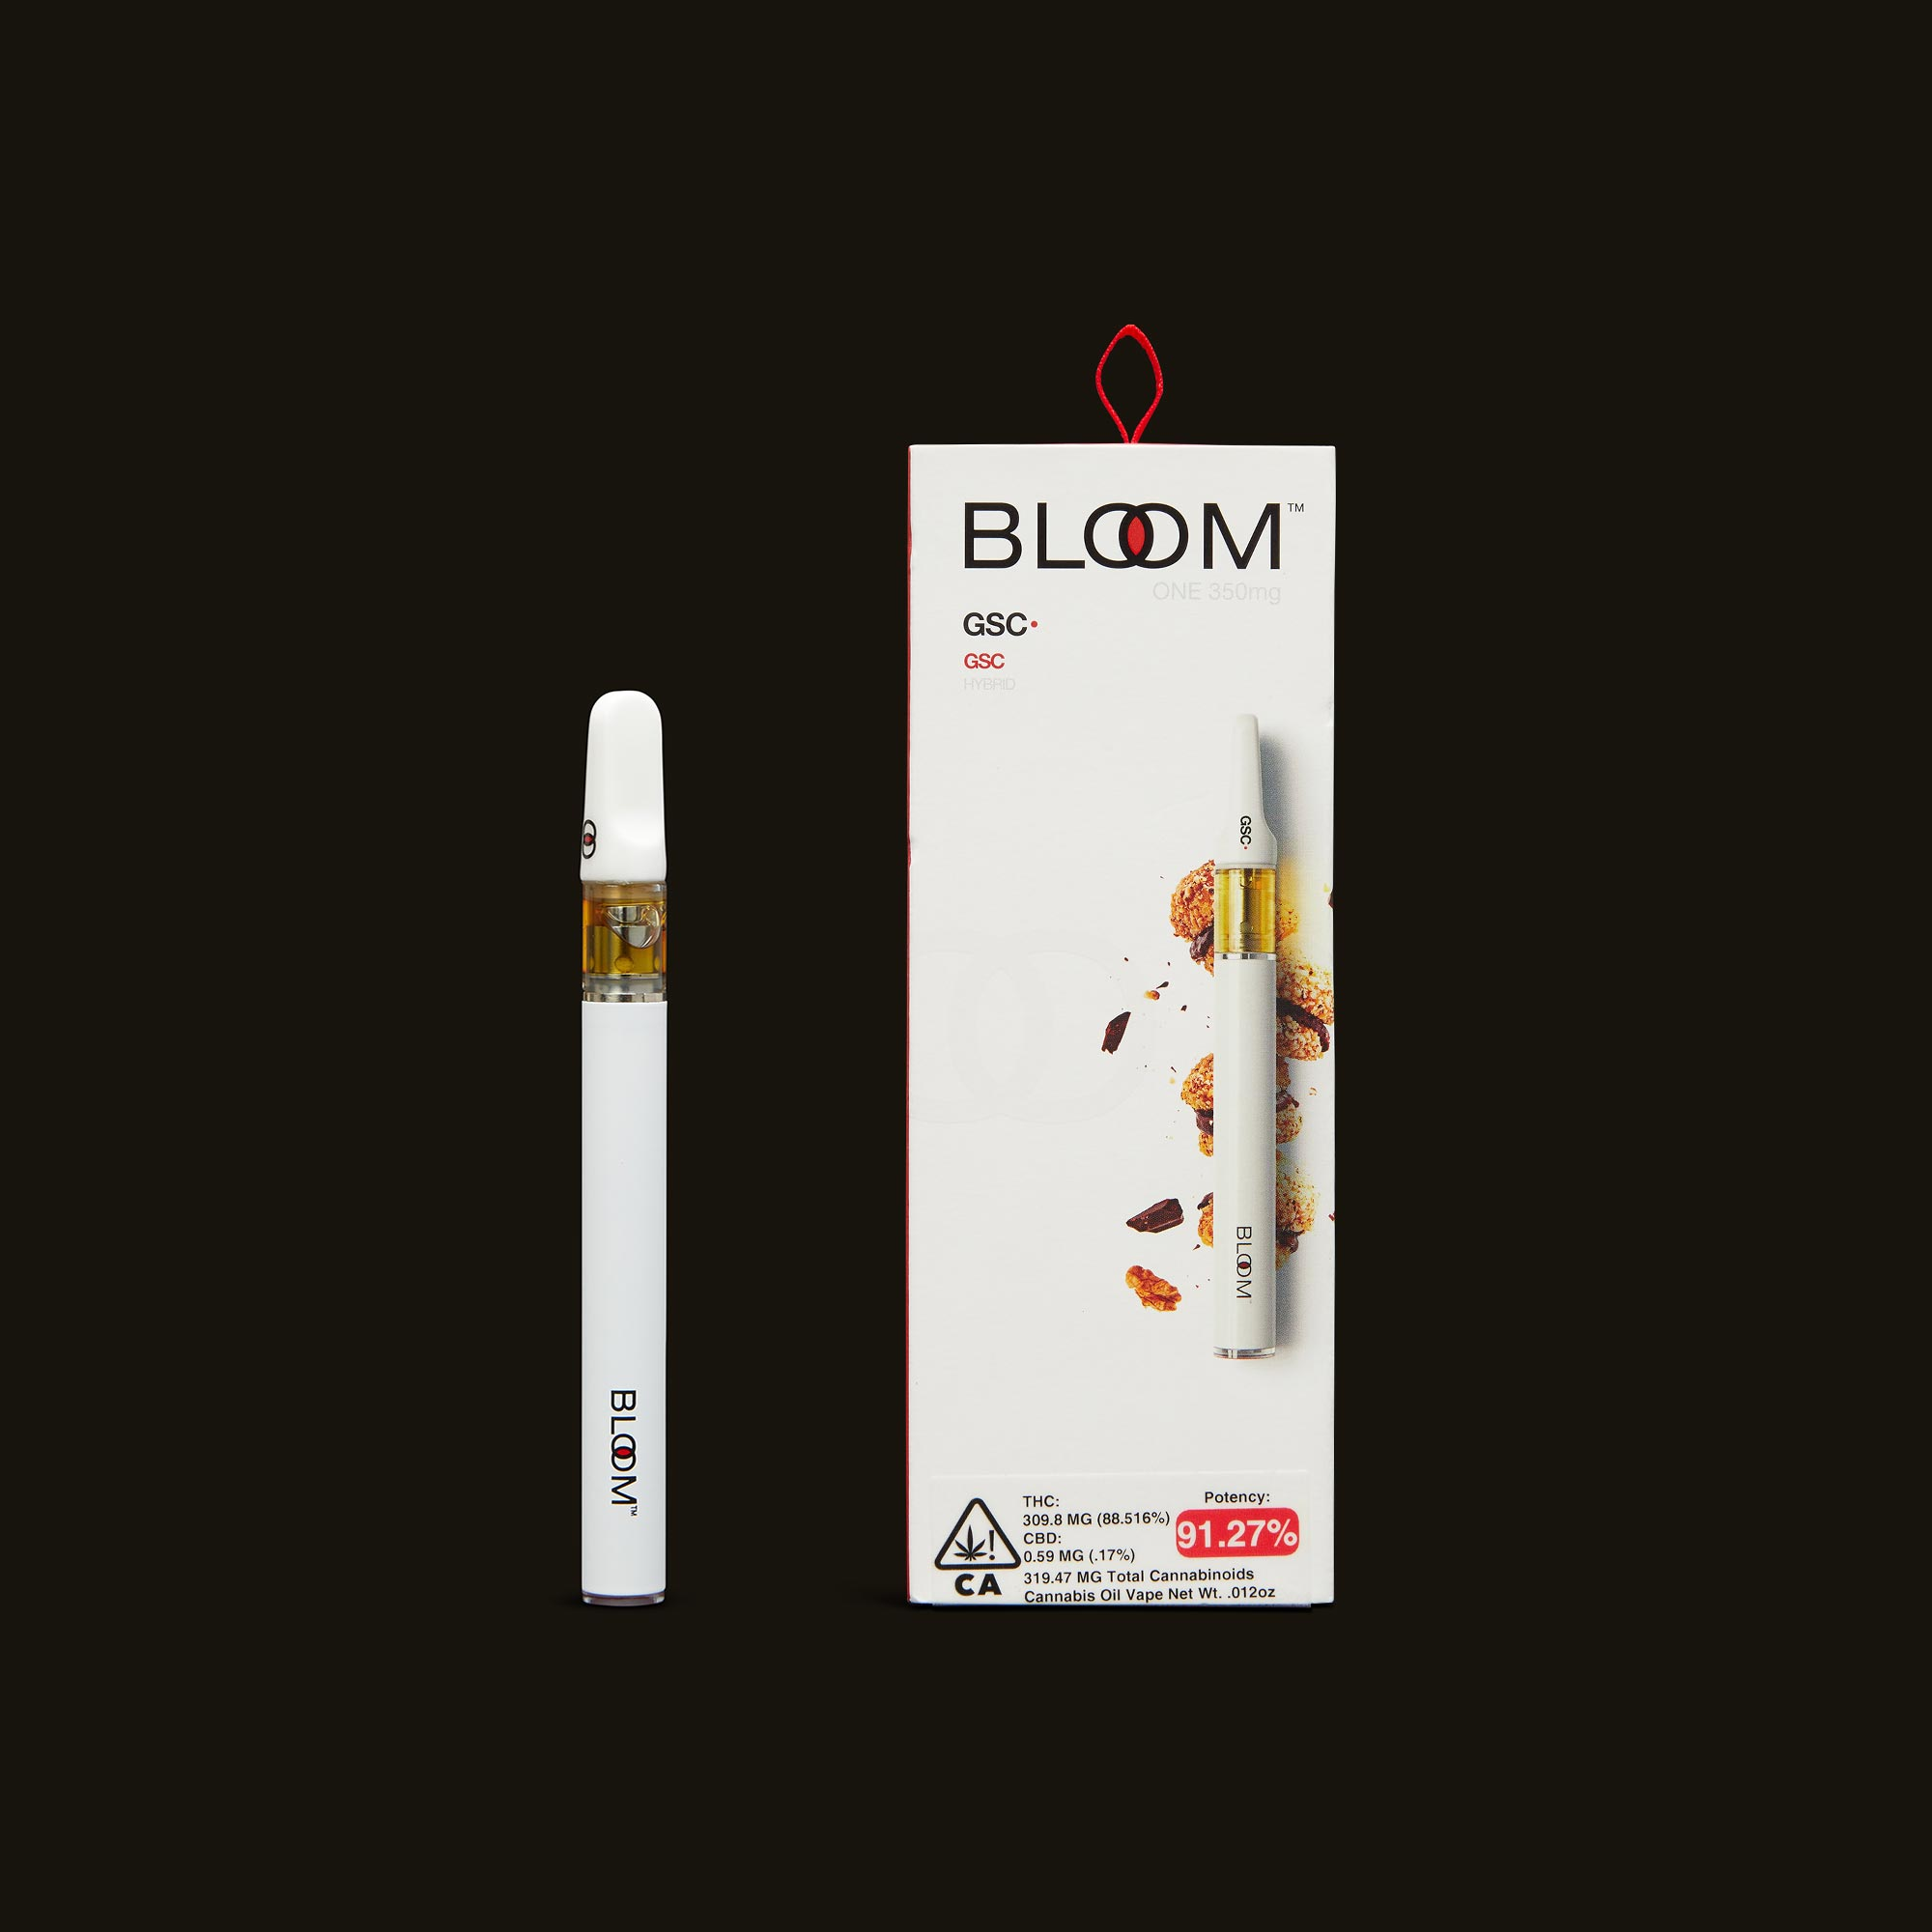 GSC Bloom One by Bloom Brands